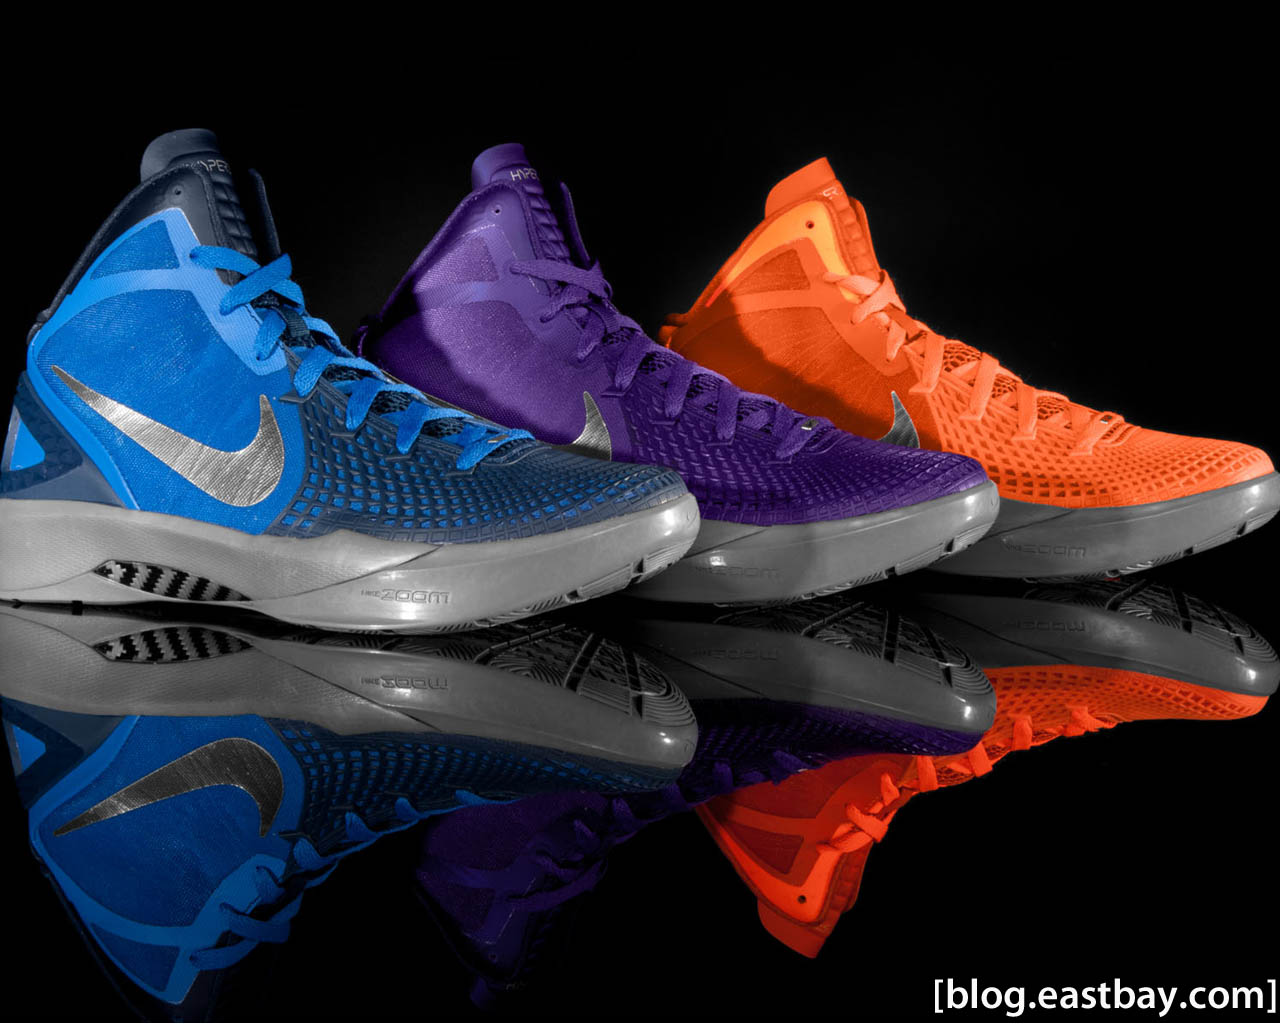 Wallpaper Nike Zoom Hyperdunk 2011 Supreme Eastbay Blog 1280x1024